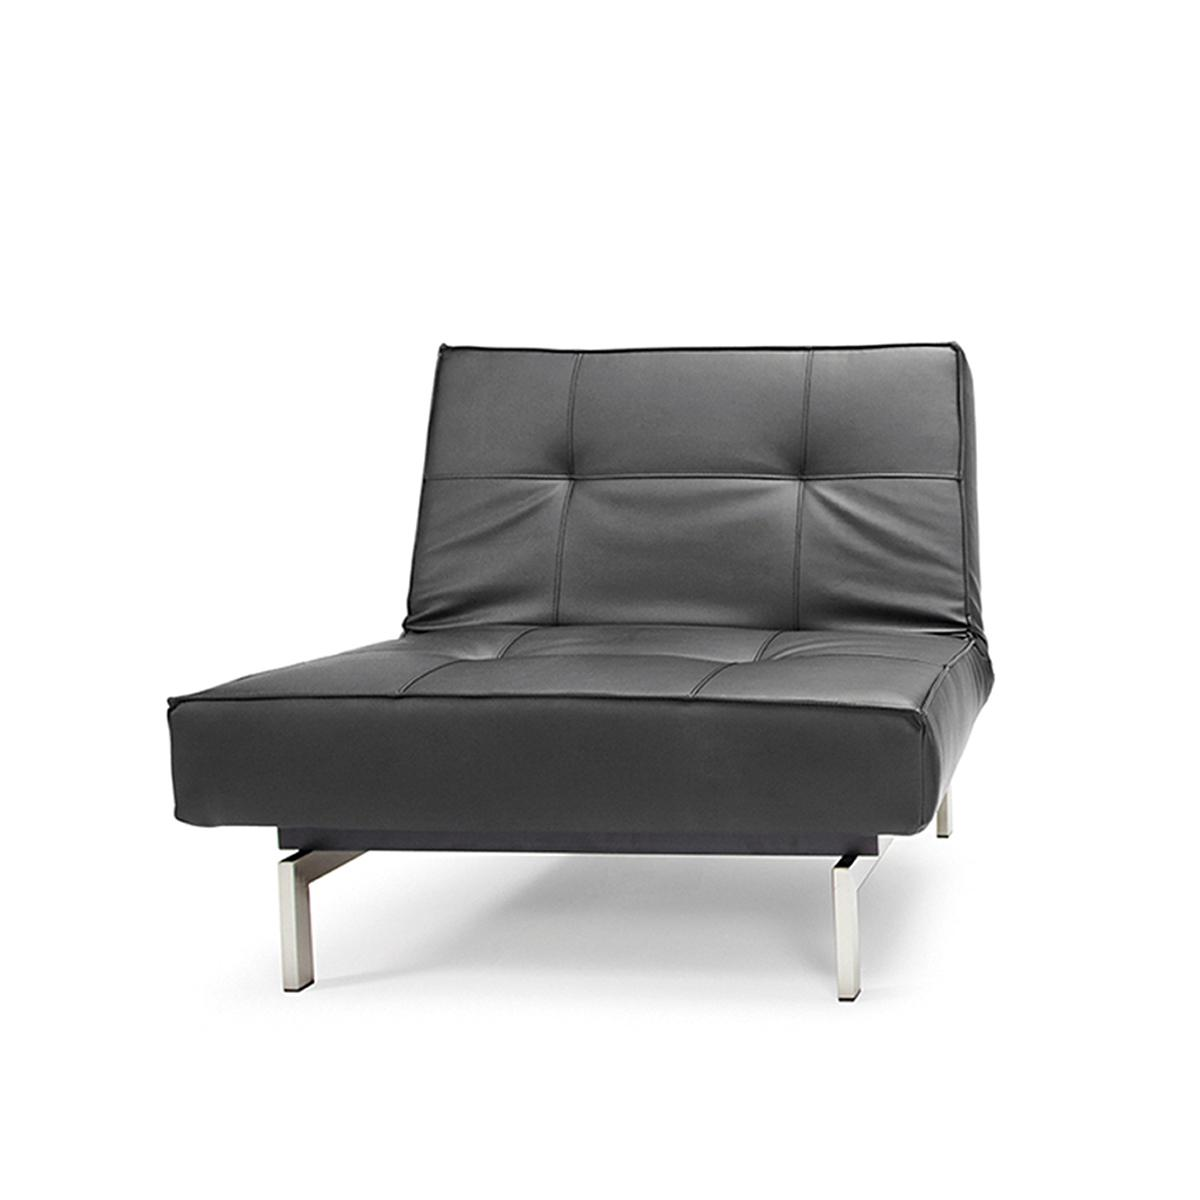 Splitback Chair - Leather Look Black with Stainless Steel